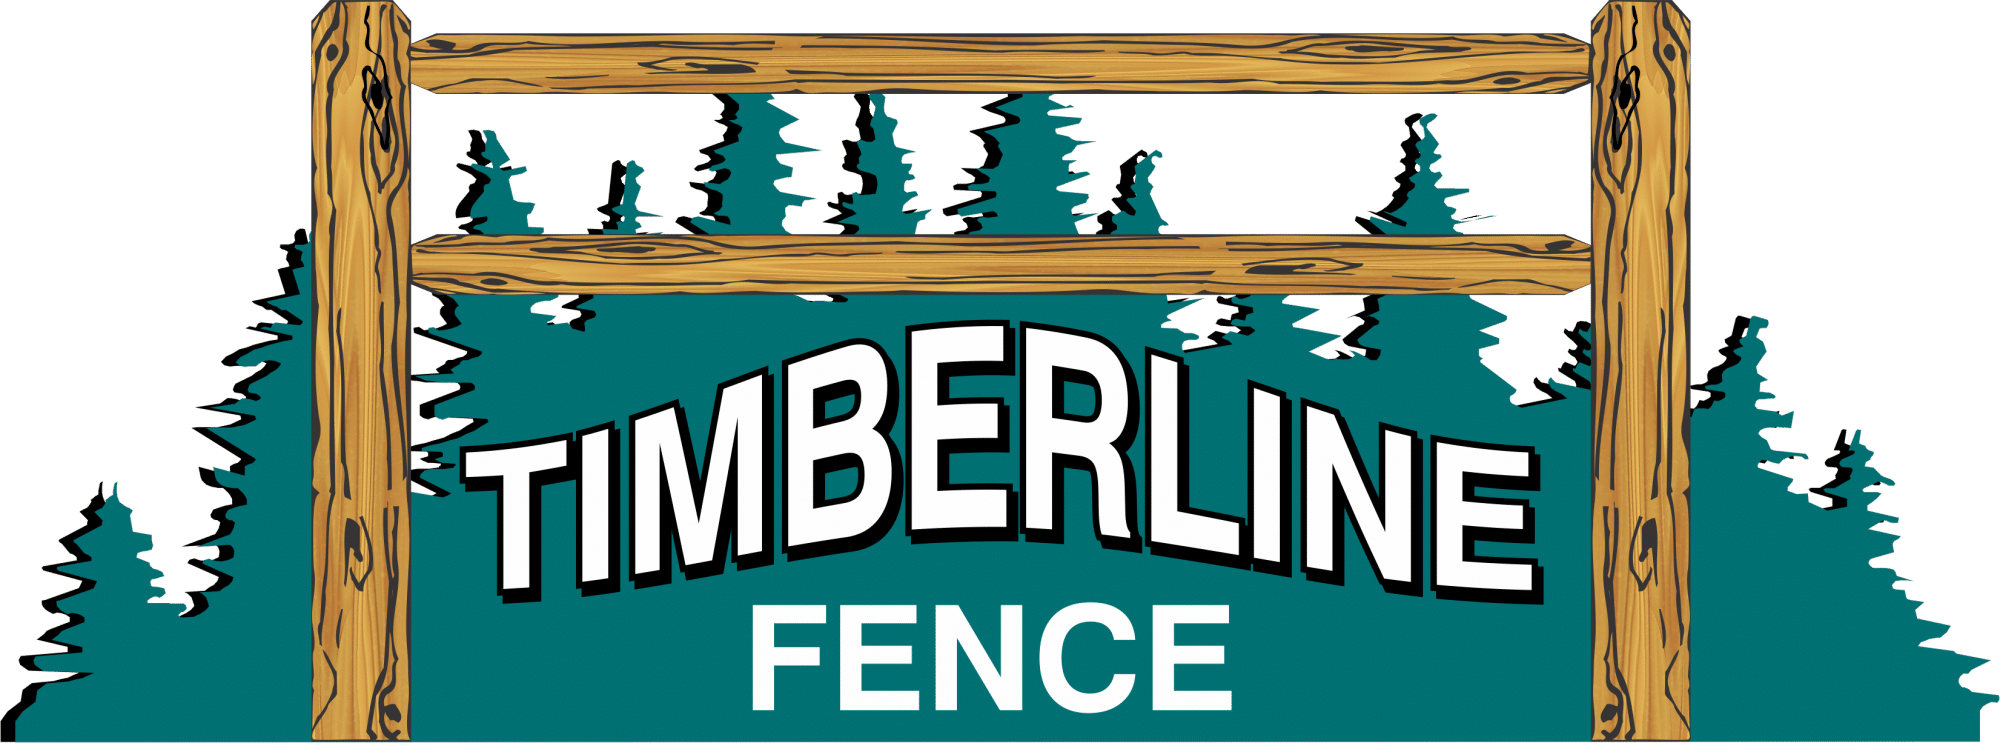 Timberline Fence